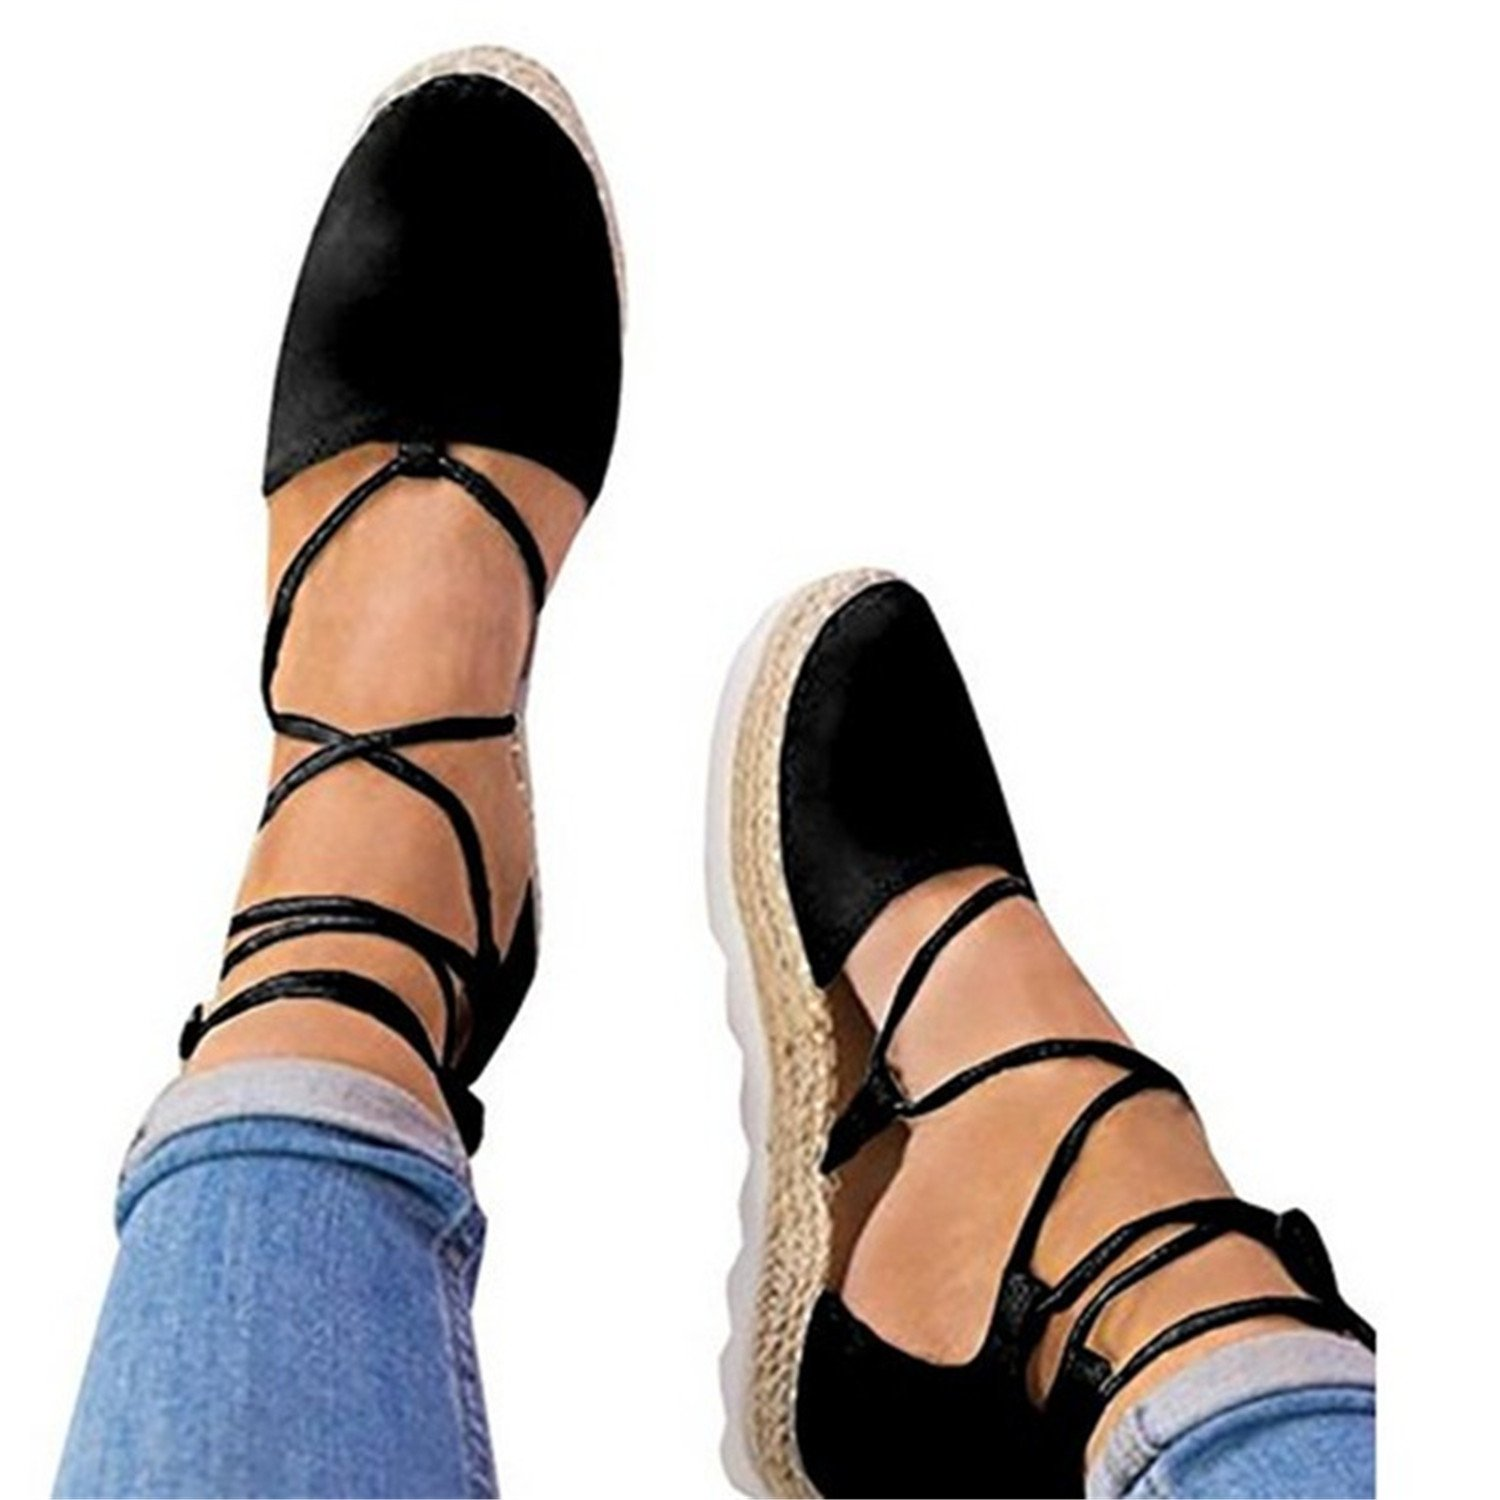 New Women Summer Cross-Tied Flat Sandals Flat Shoes Fashion Casual Cold Fish Mouth Shoes Bandage Hemp Sandals 35-44 B07CVBX541 10.5 B(M) US|Black